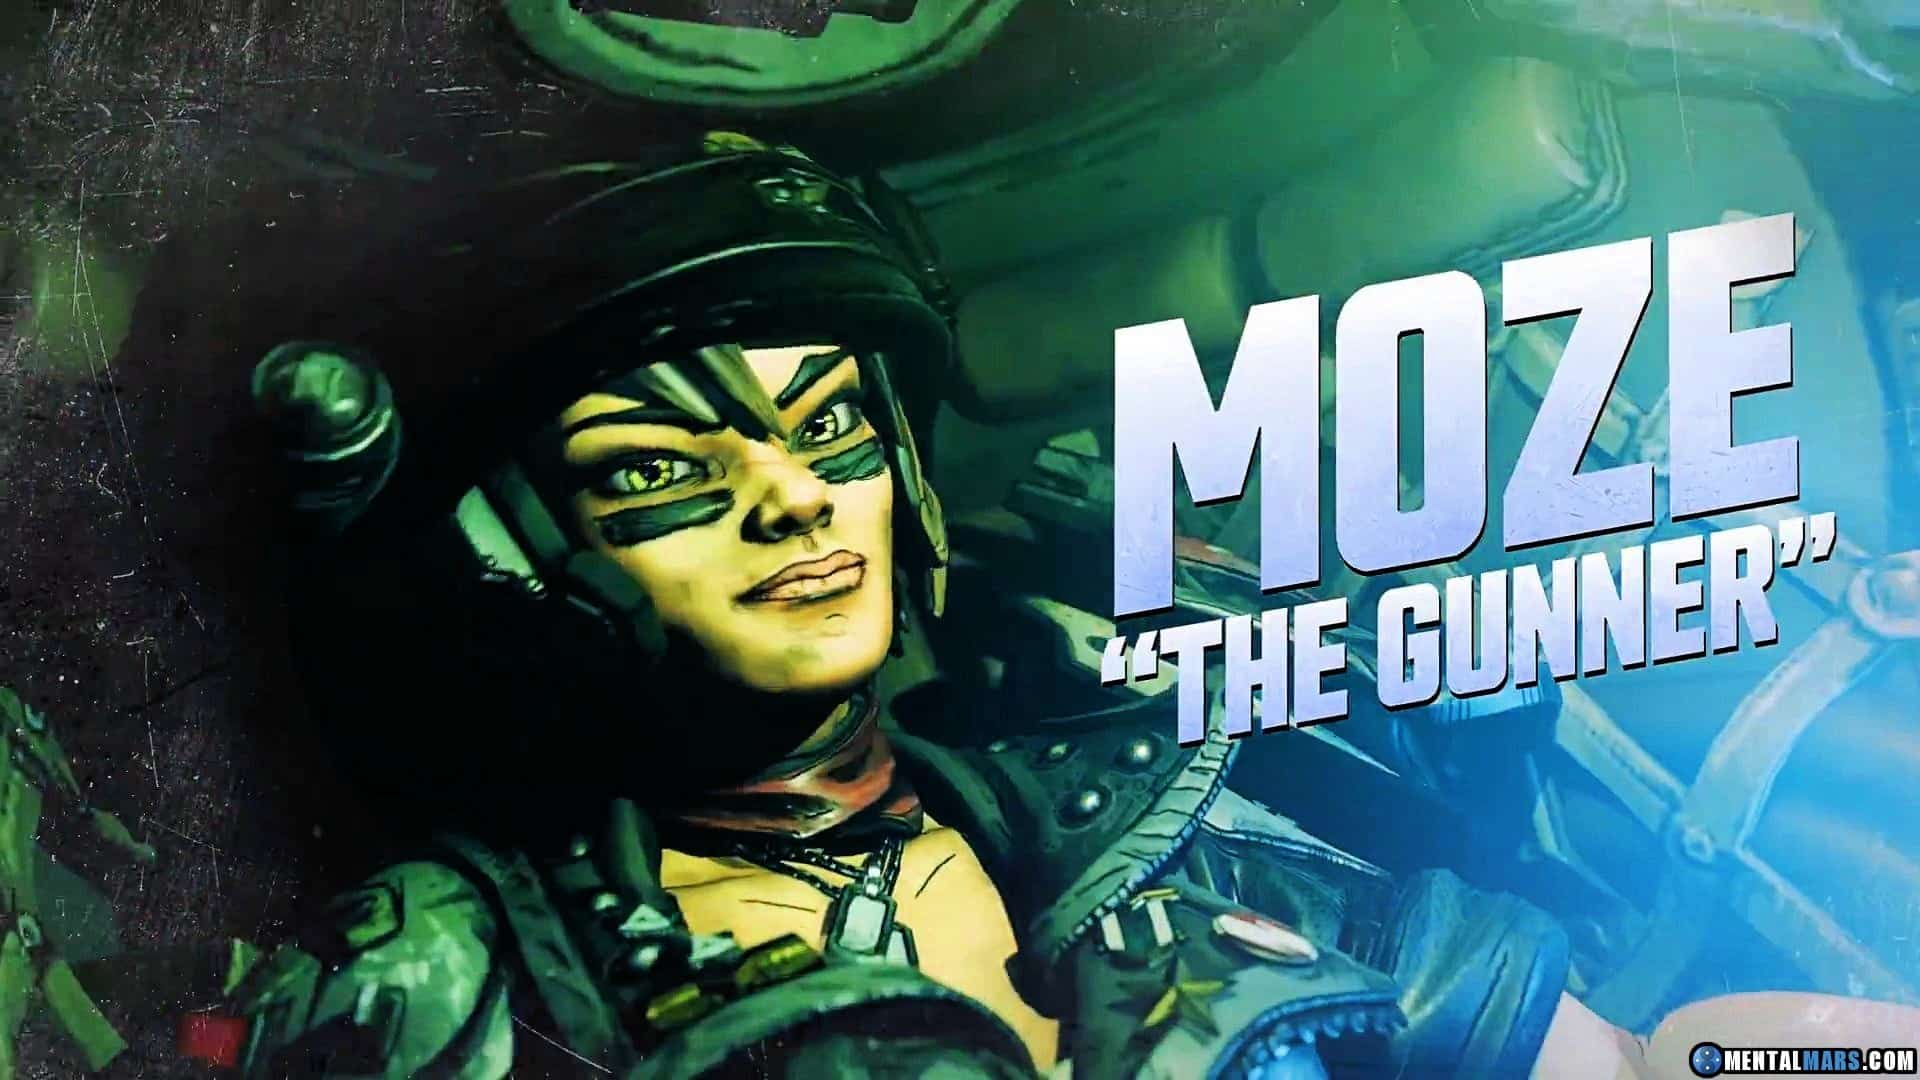 Meet Moze The Gunner In The Latest Borderlands 3 Vault Hunter Profile Trailer